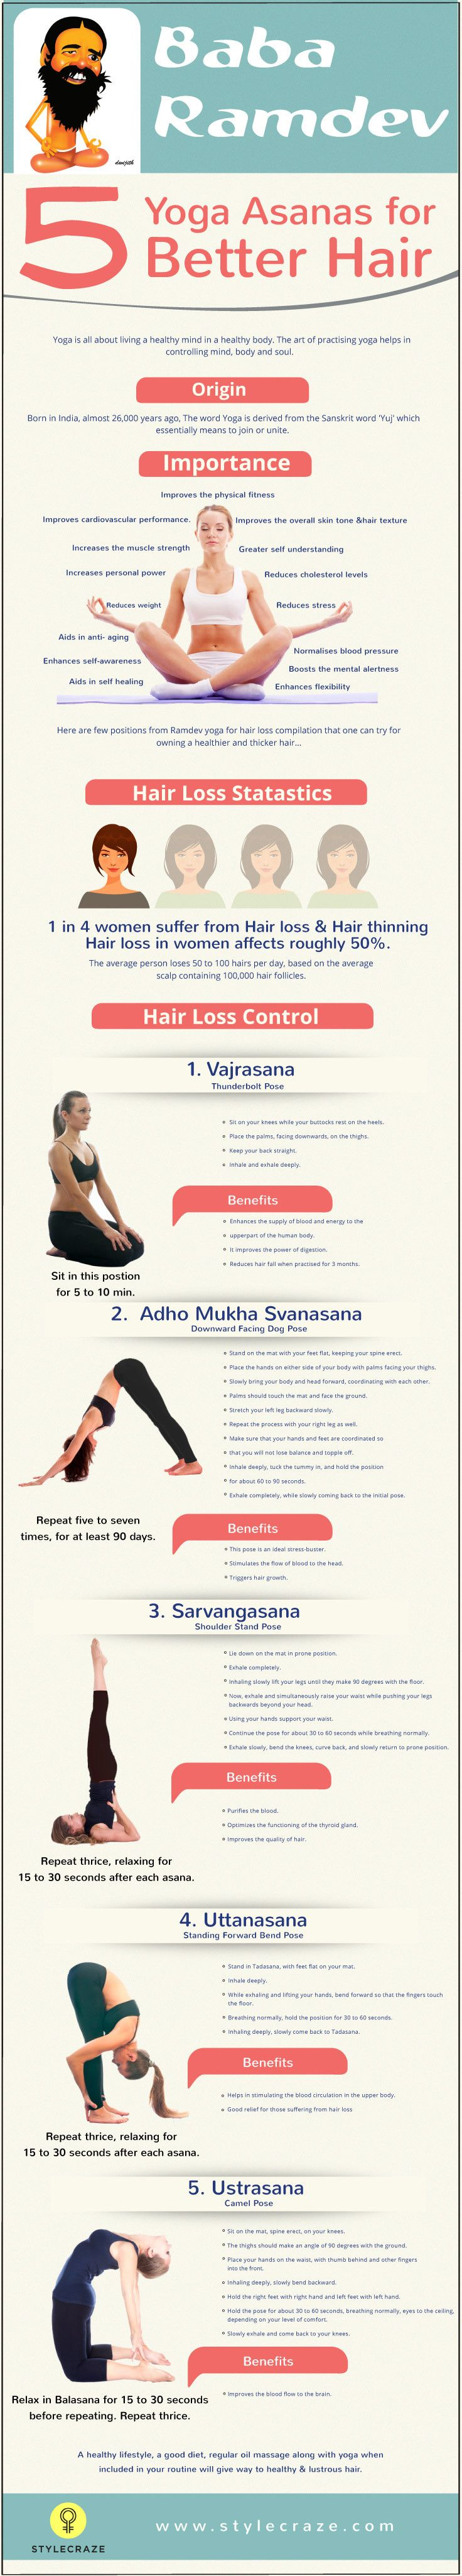 Here are few asanas from Ramdev yoga for hair loss compilation that one can try for healthy and strong hair.